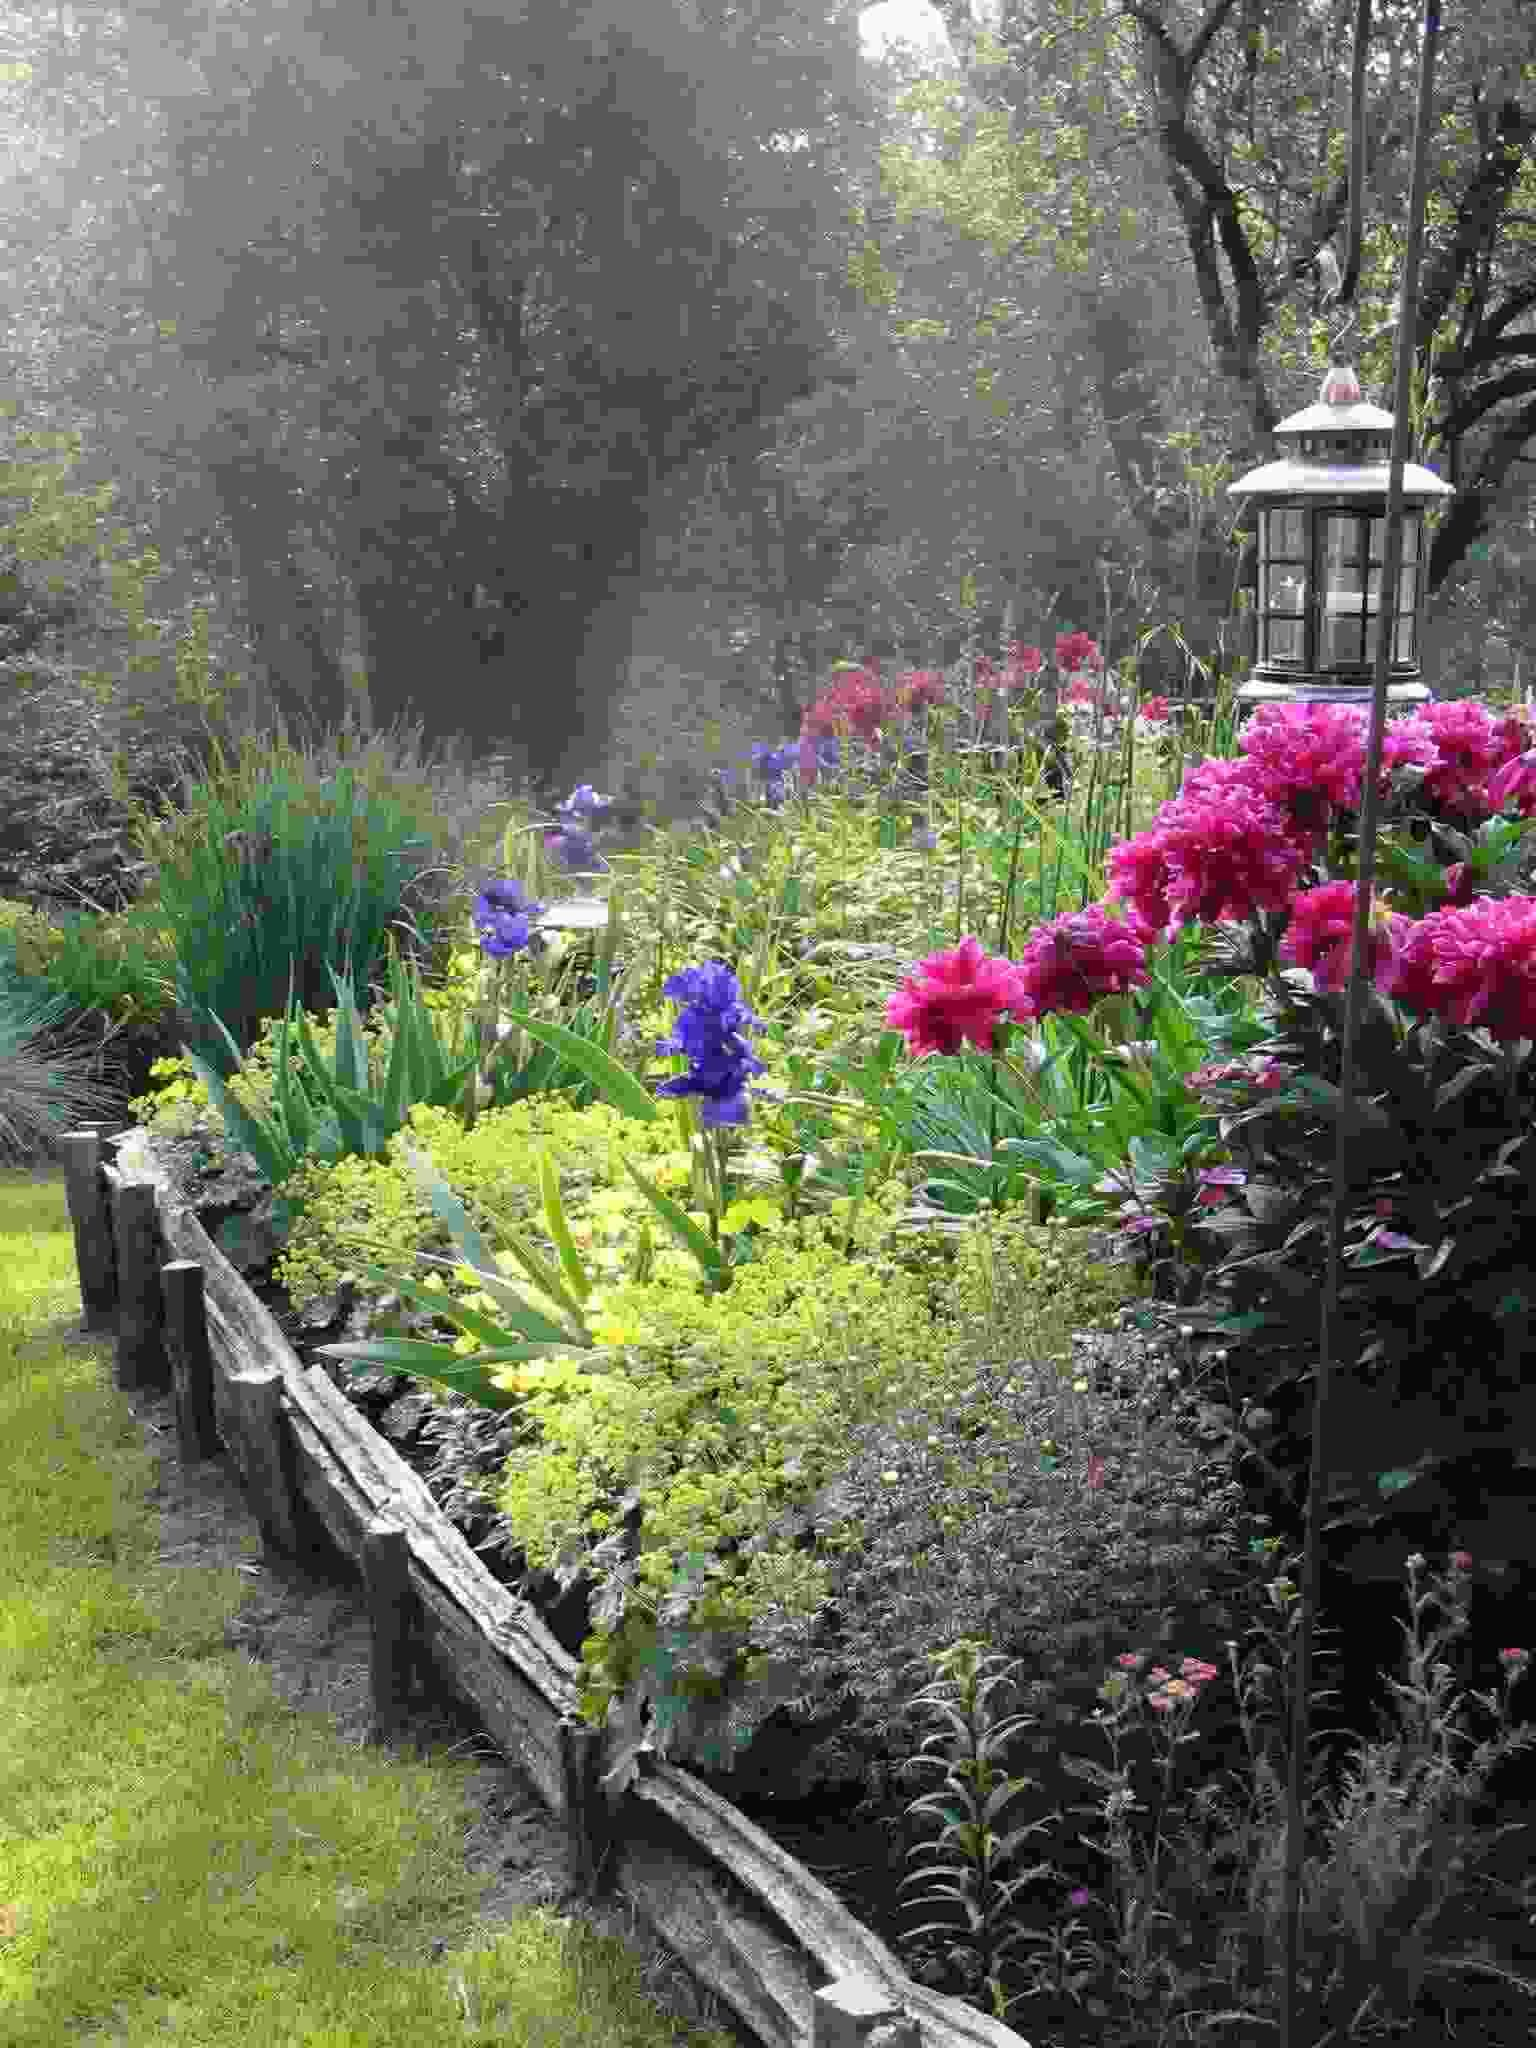 i'd love to get my gardens looking like that someday.i'm afraid